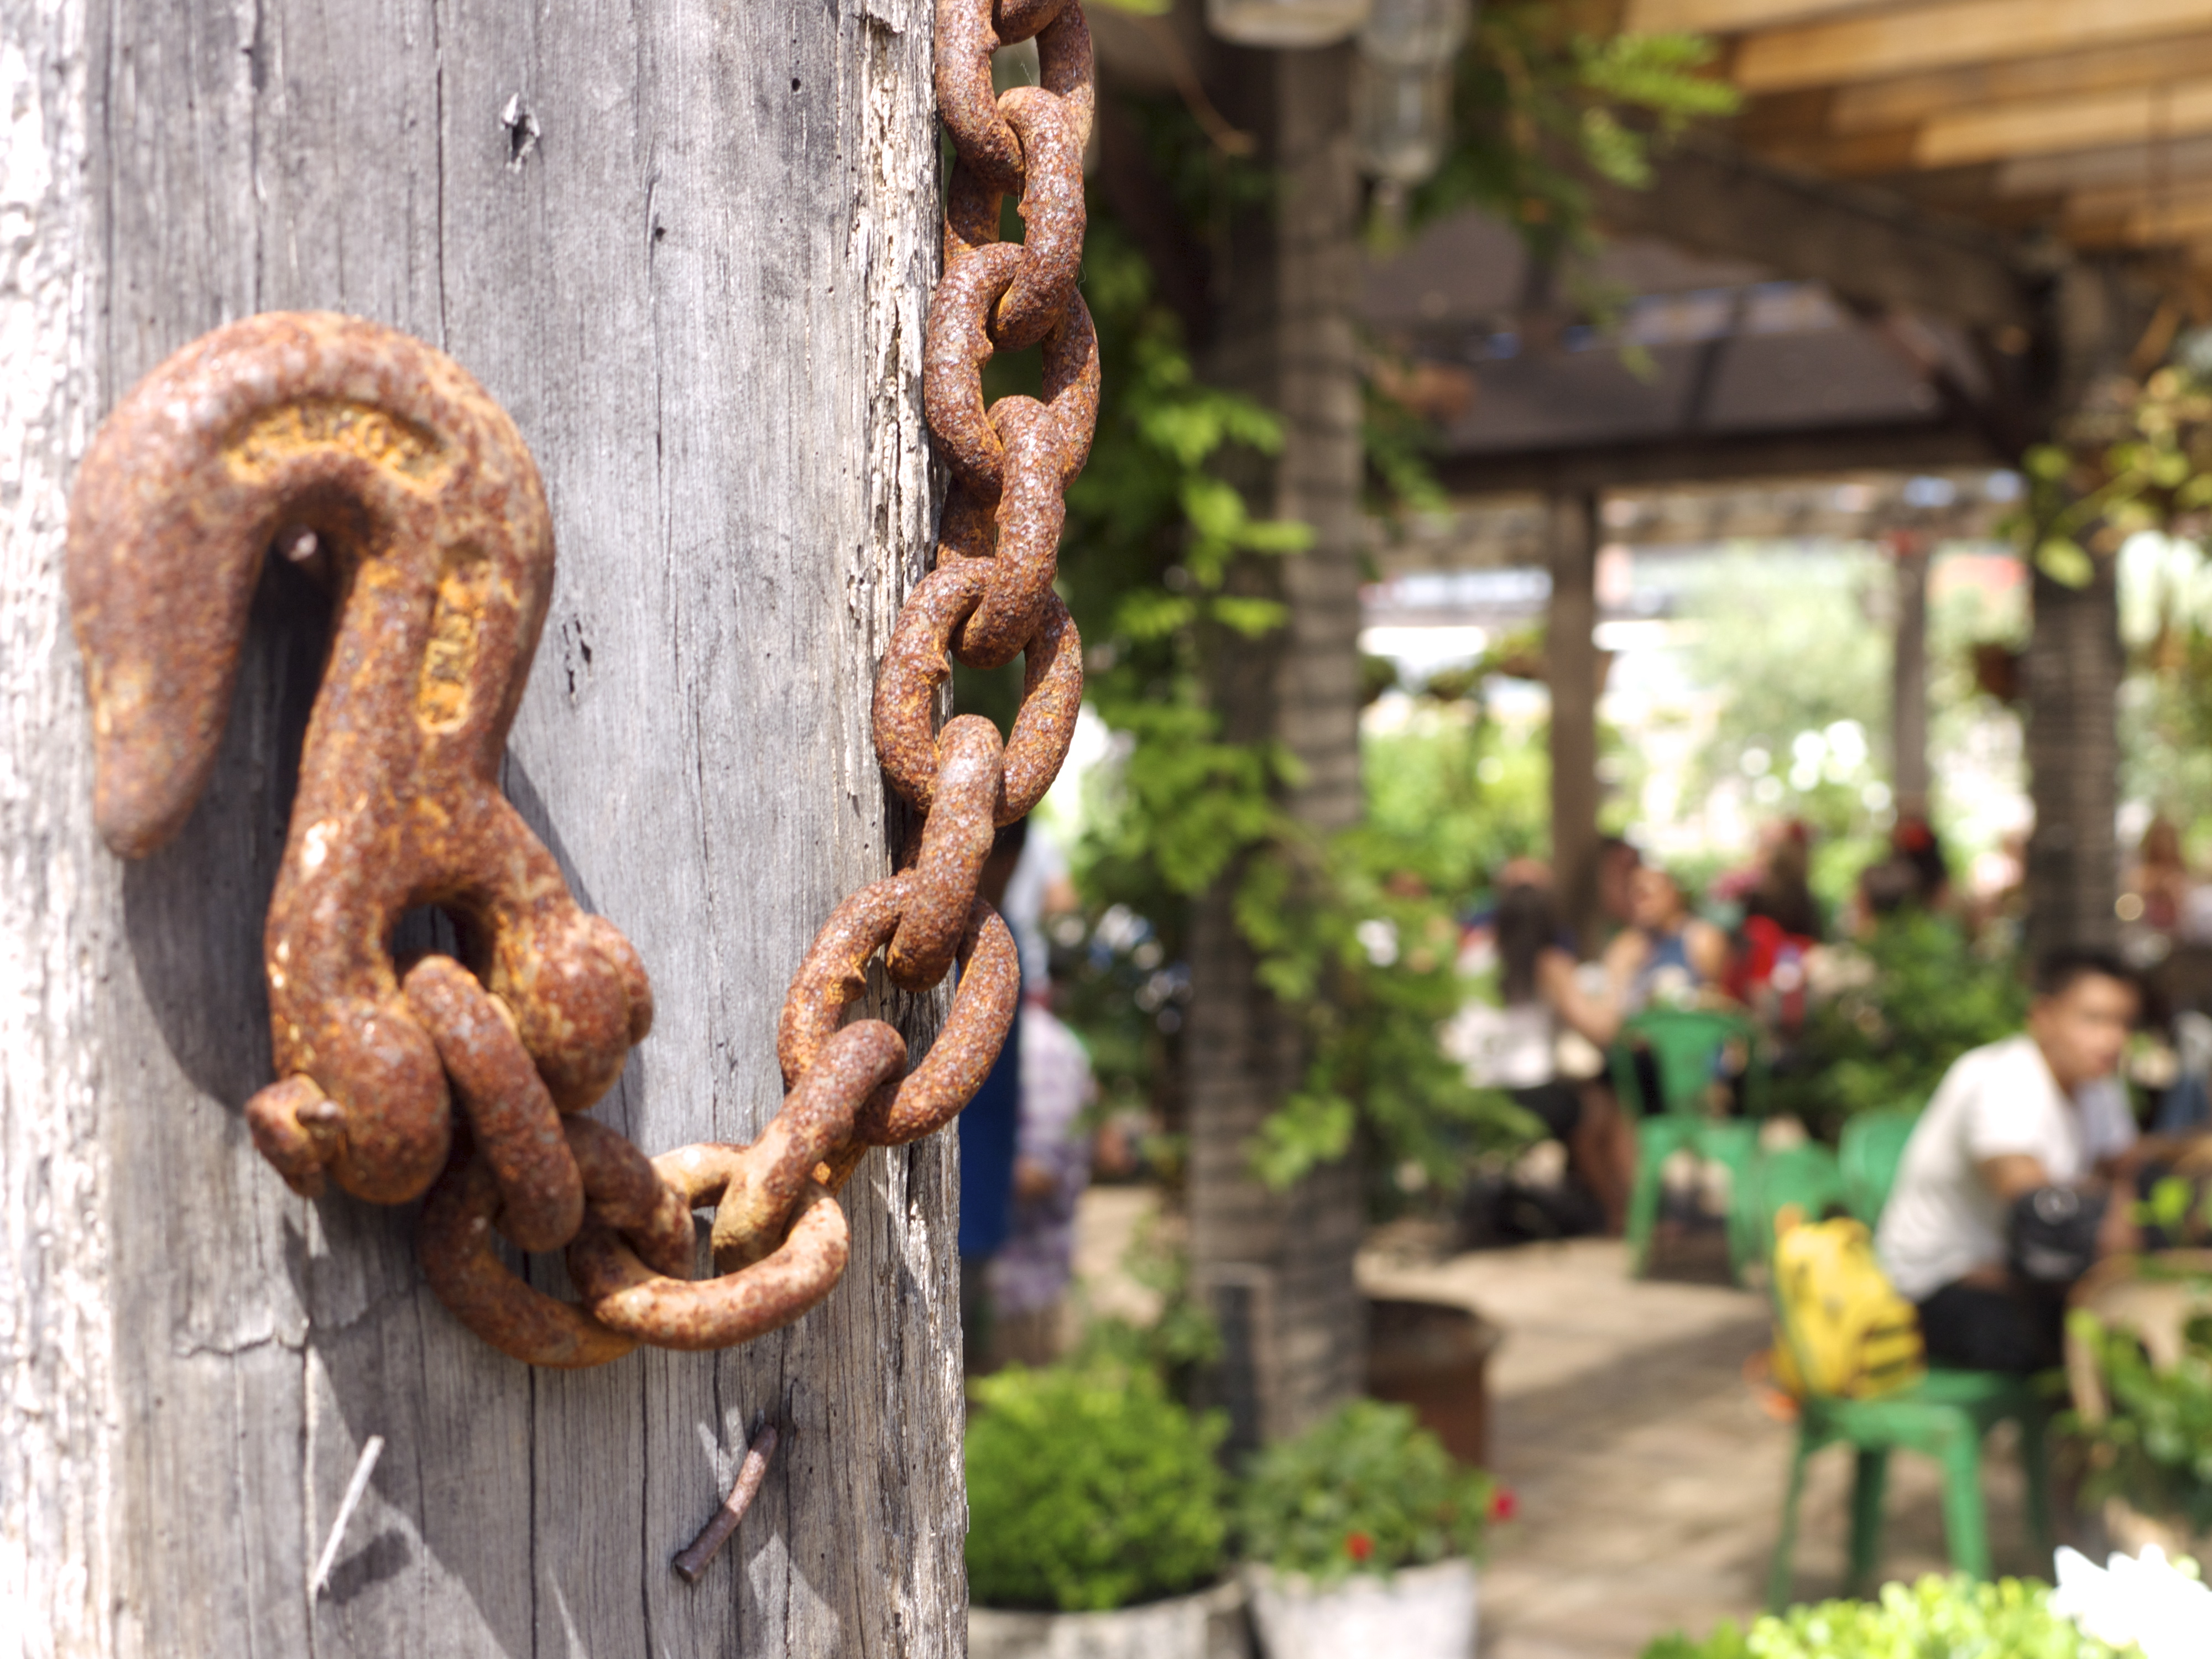 The Grounds of Alexandria - Rusted Chain